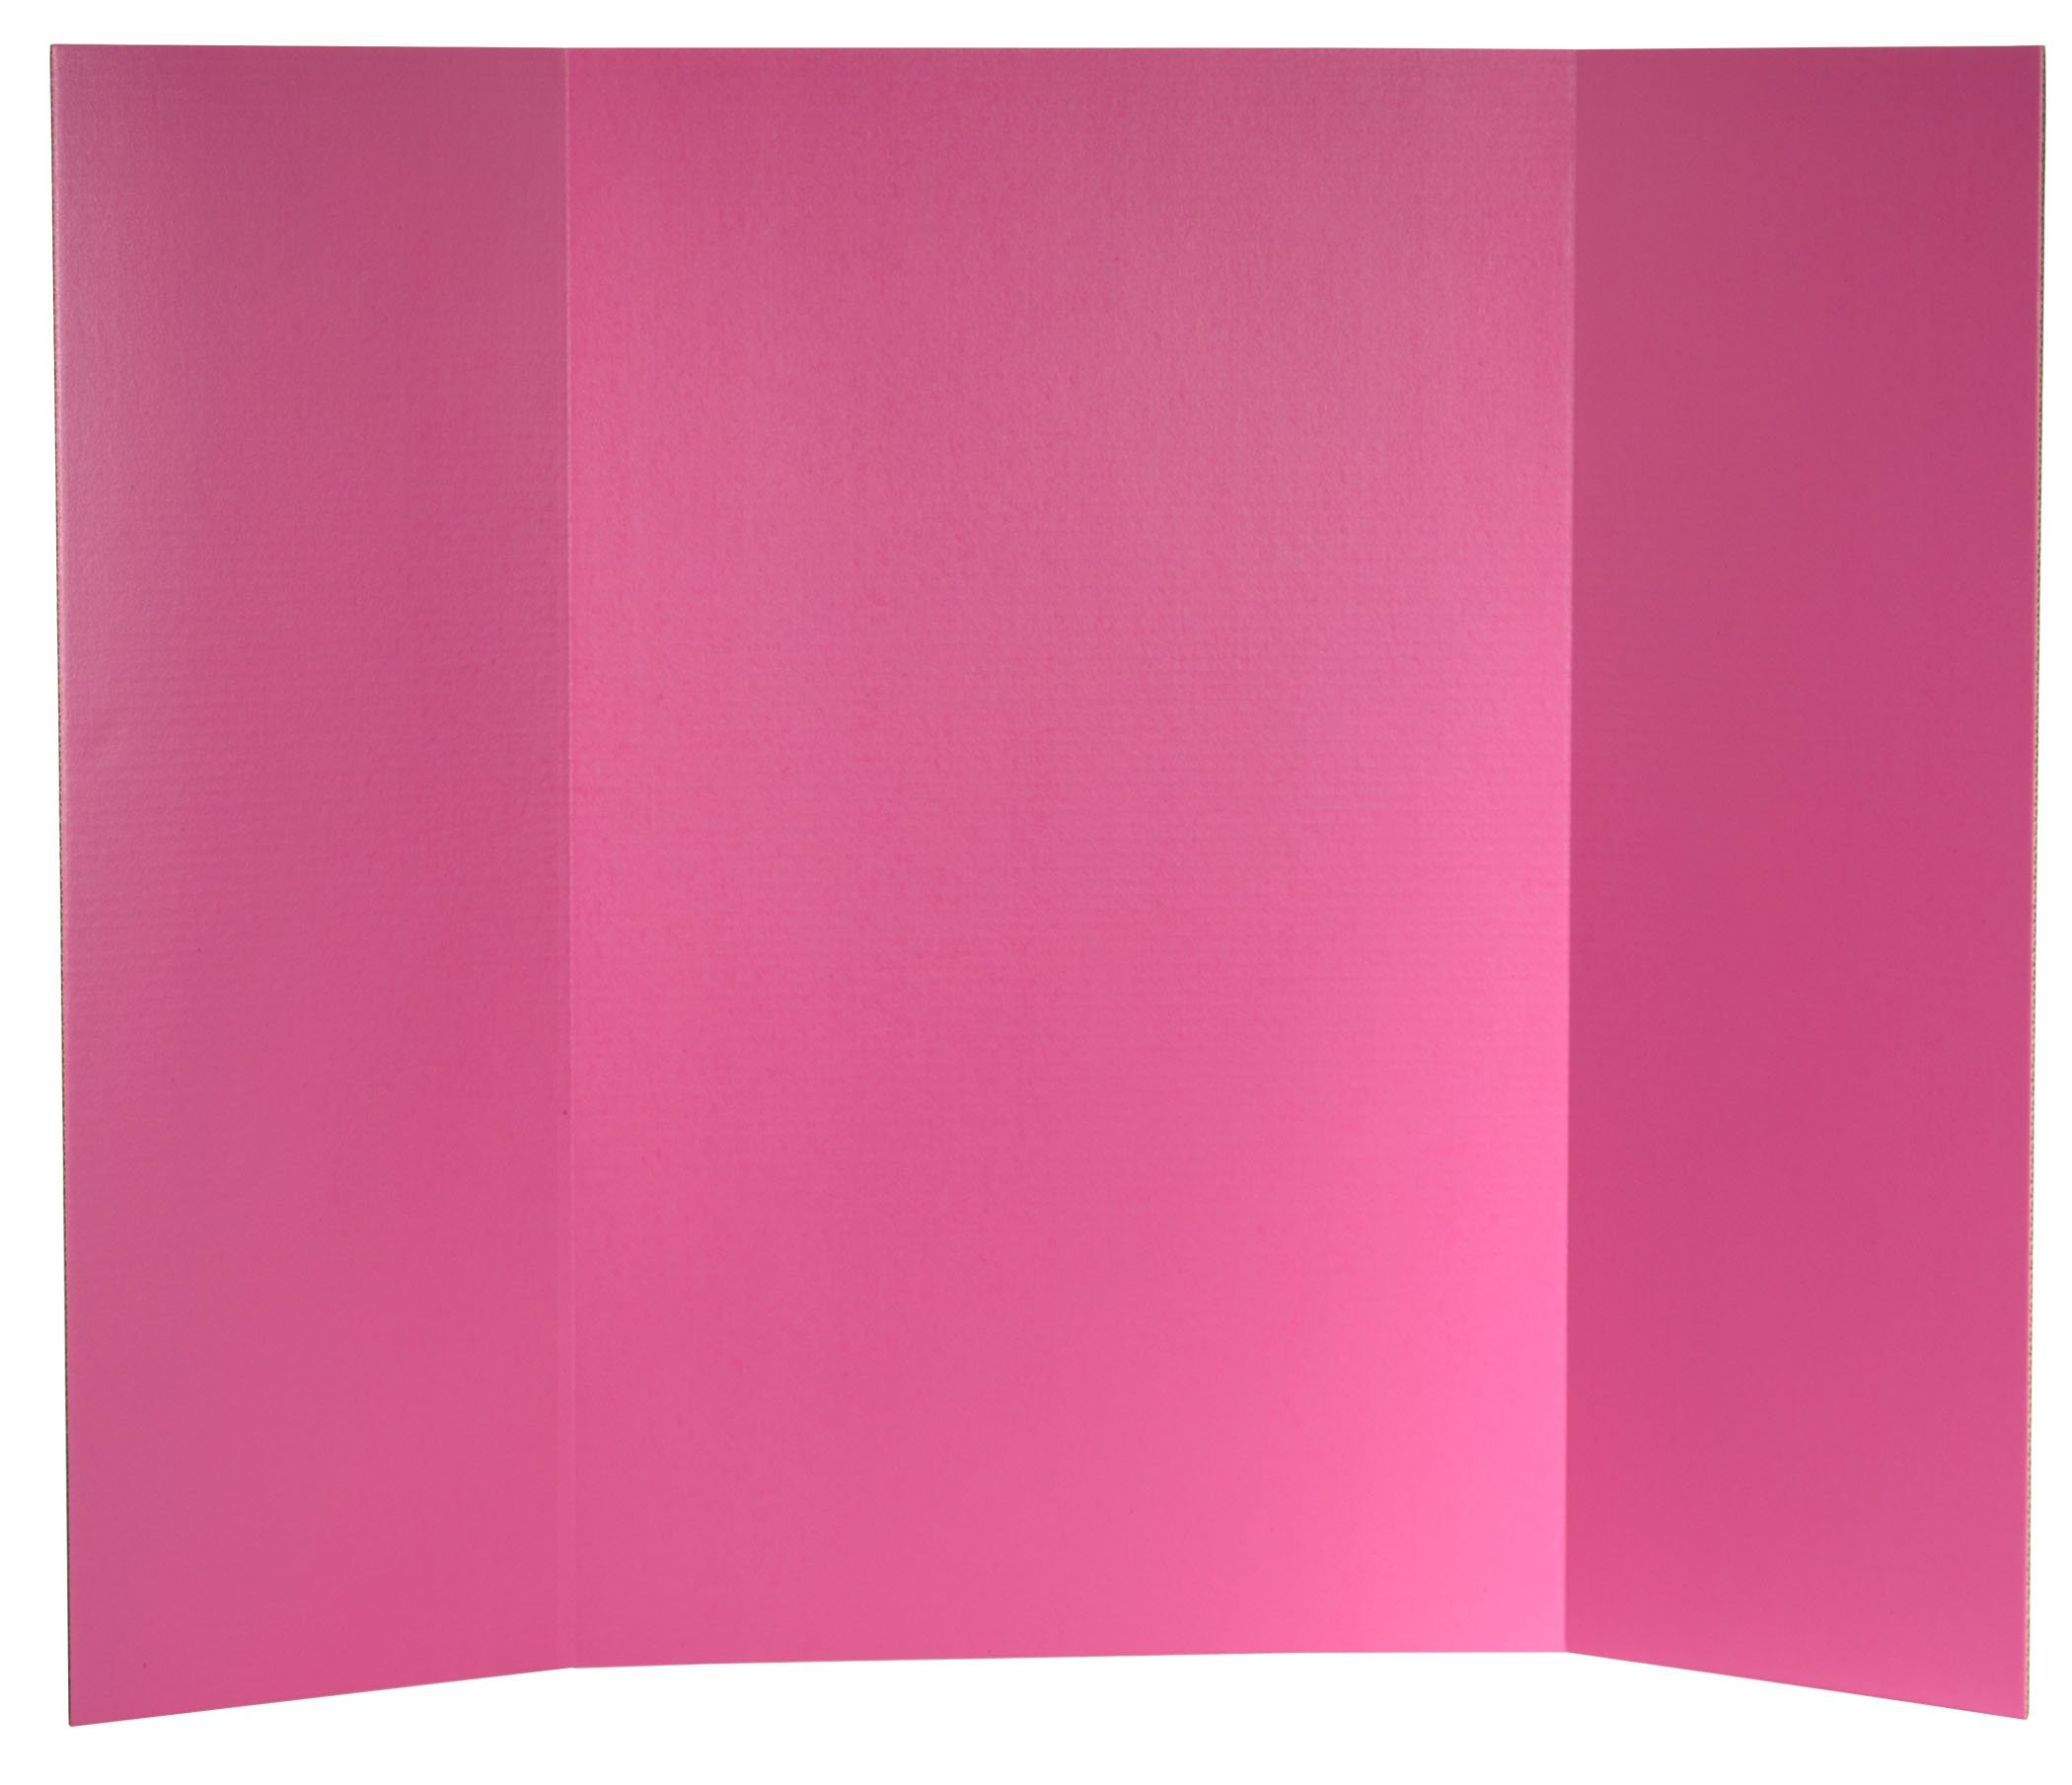 Flipside Products 30063 Project Display Board,  Pink (Pack of 24)